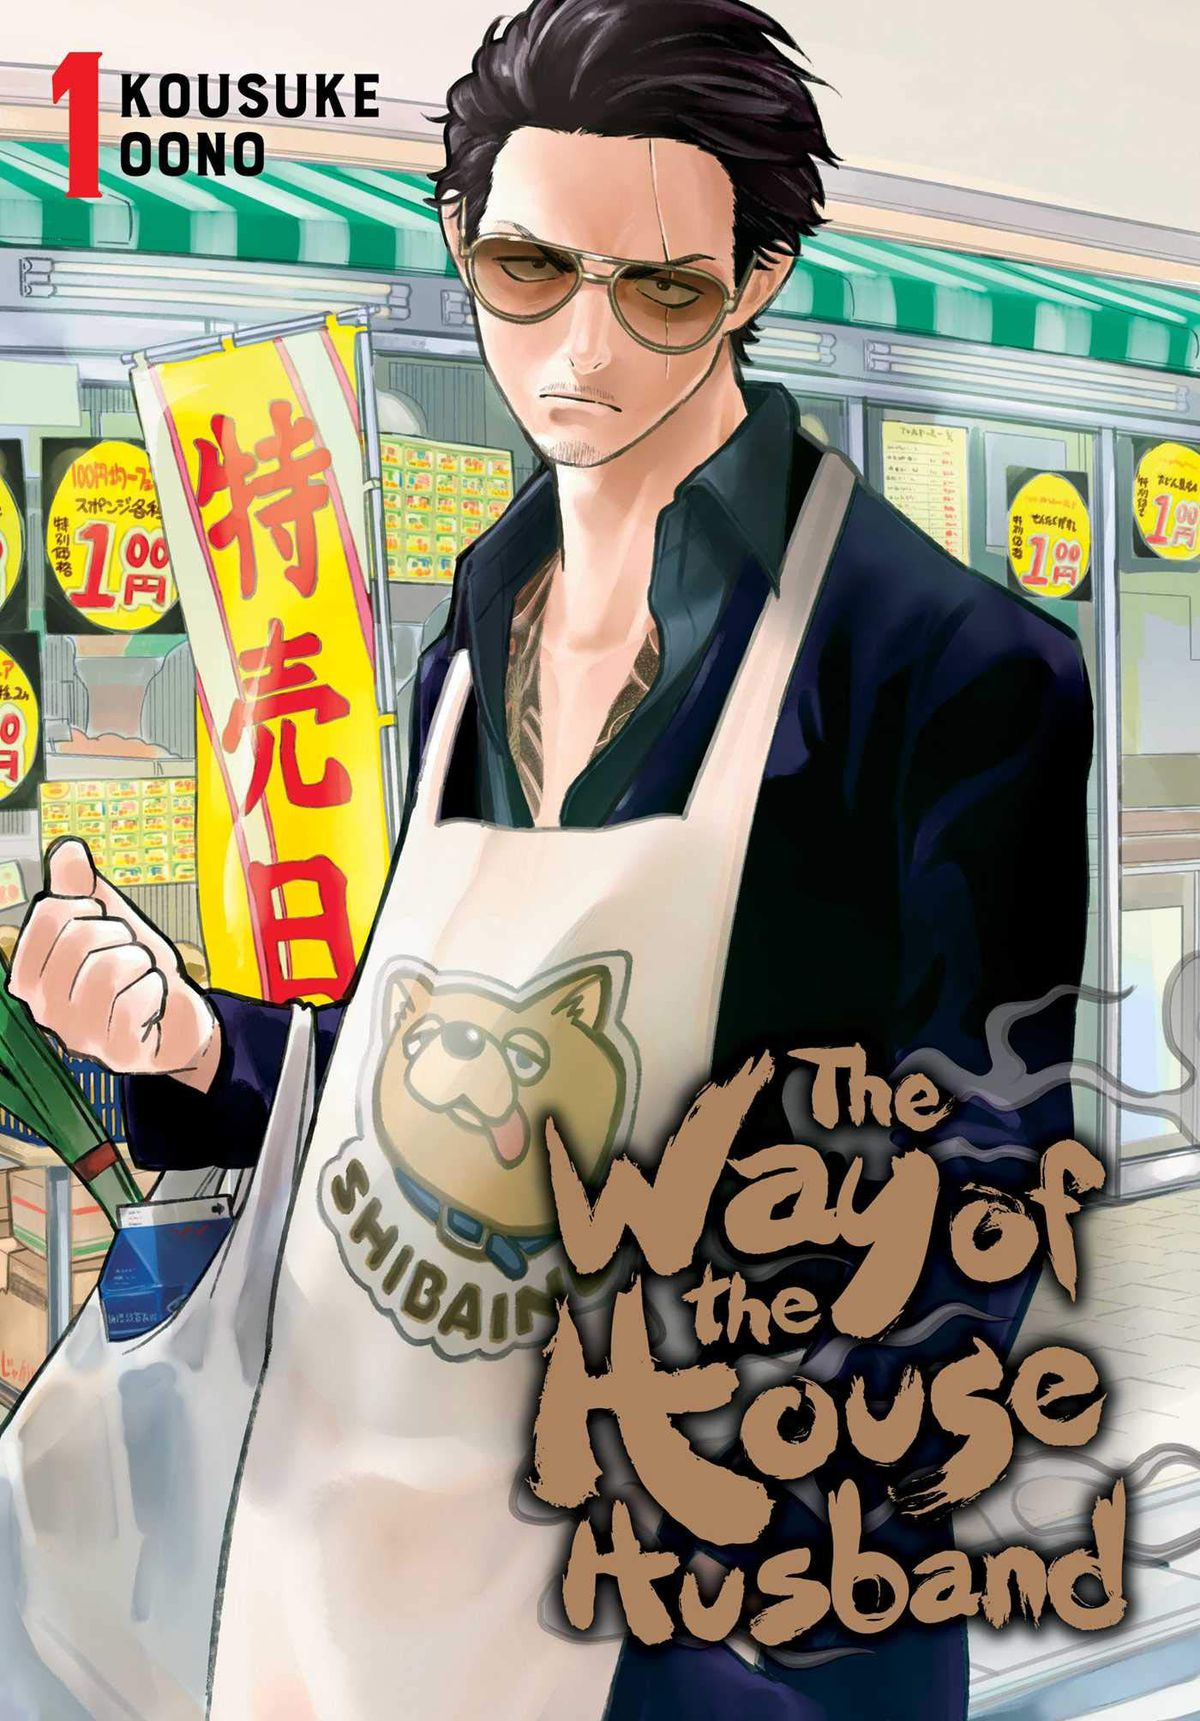 A man with a scarred face goes grocery shopping in an apron on the cover of The Way of the Househusband, Viz Media (2019).